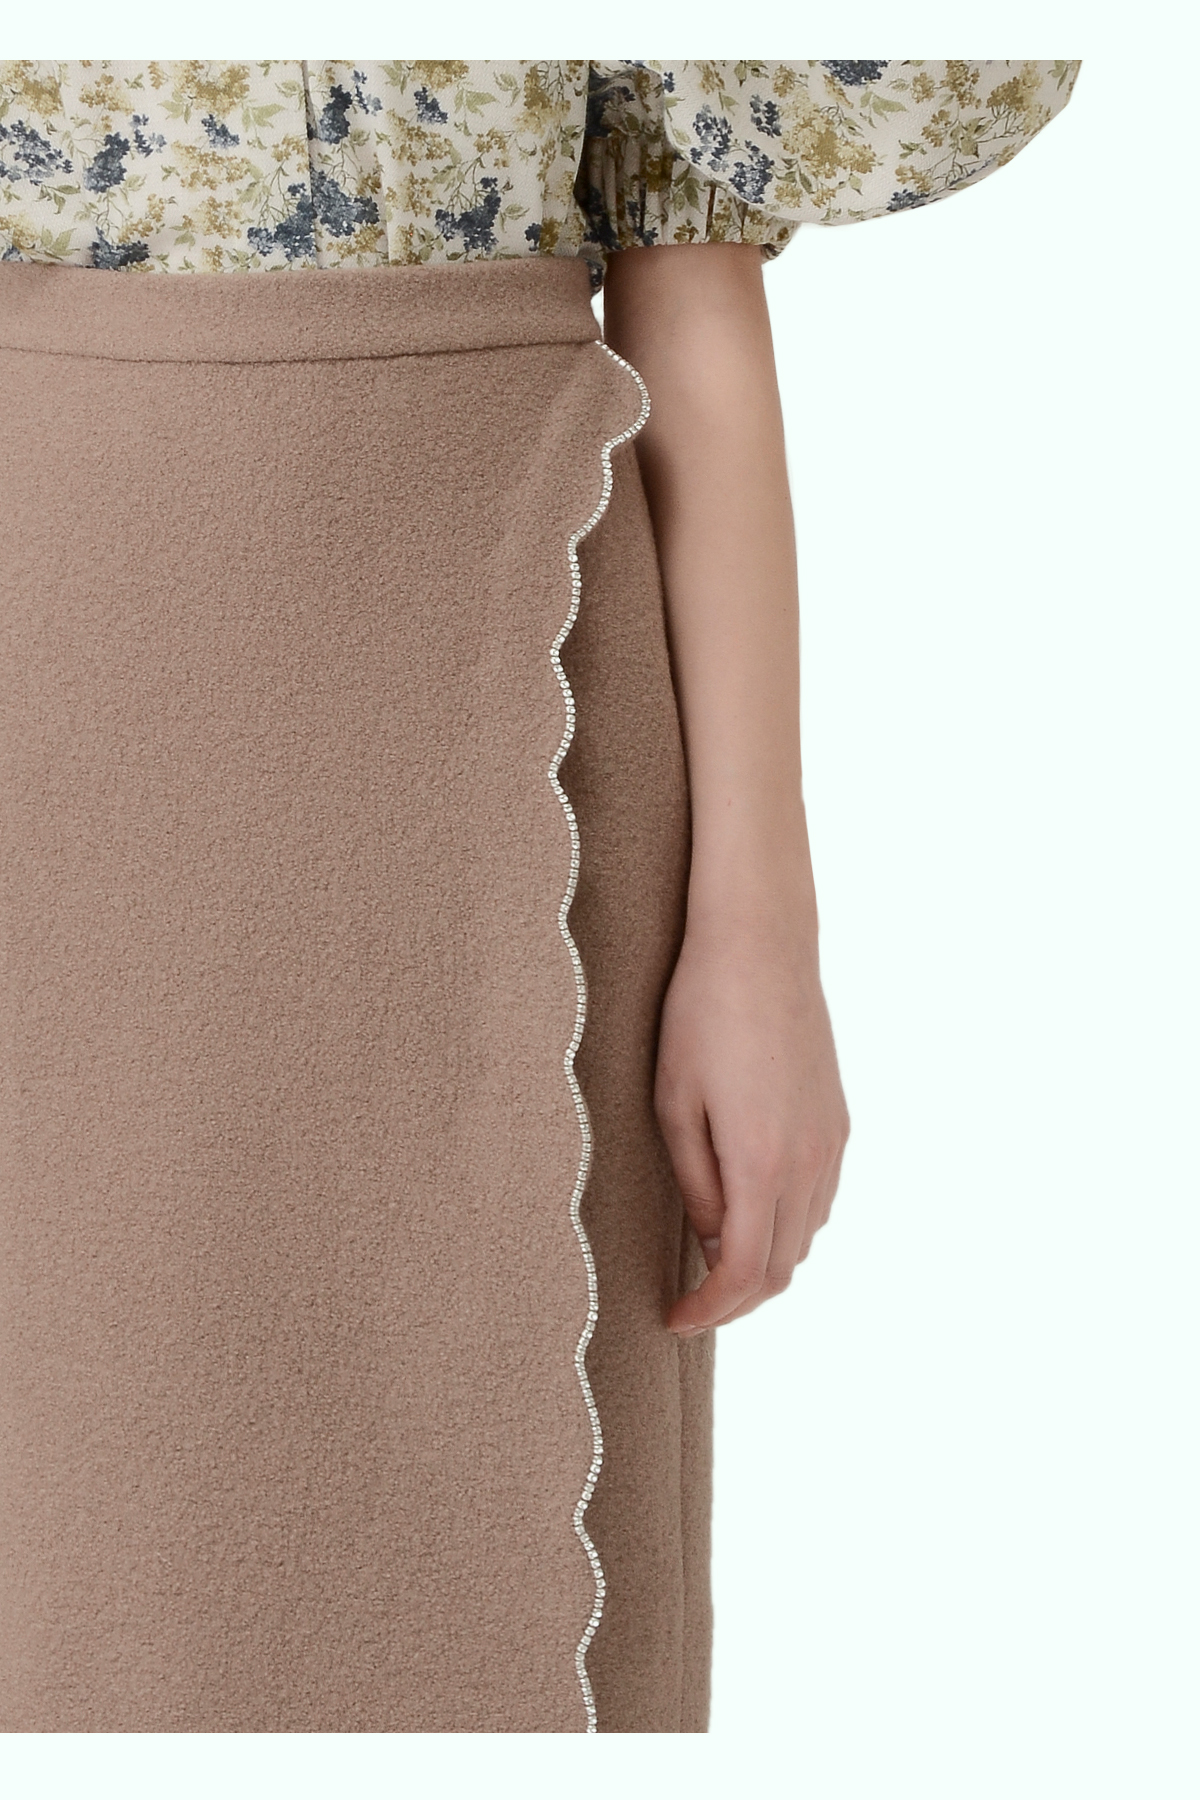 Beige wool high-waist pencil skirt with embrodiered crystals 2